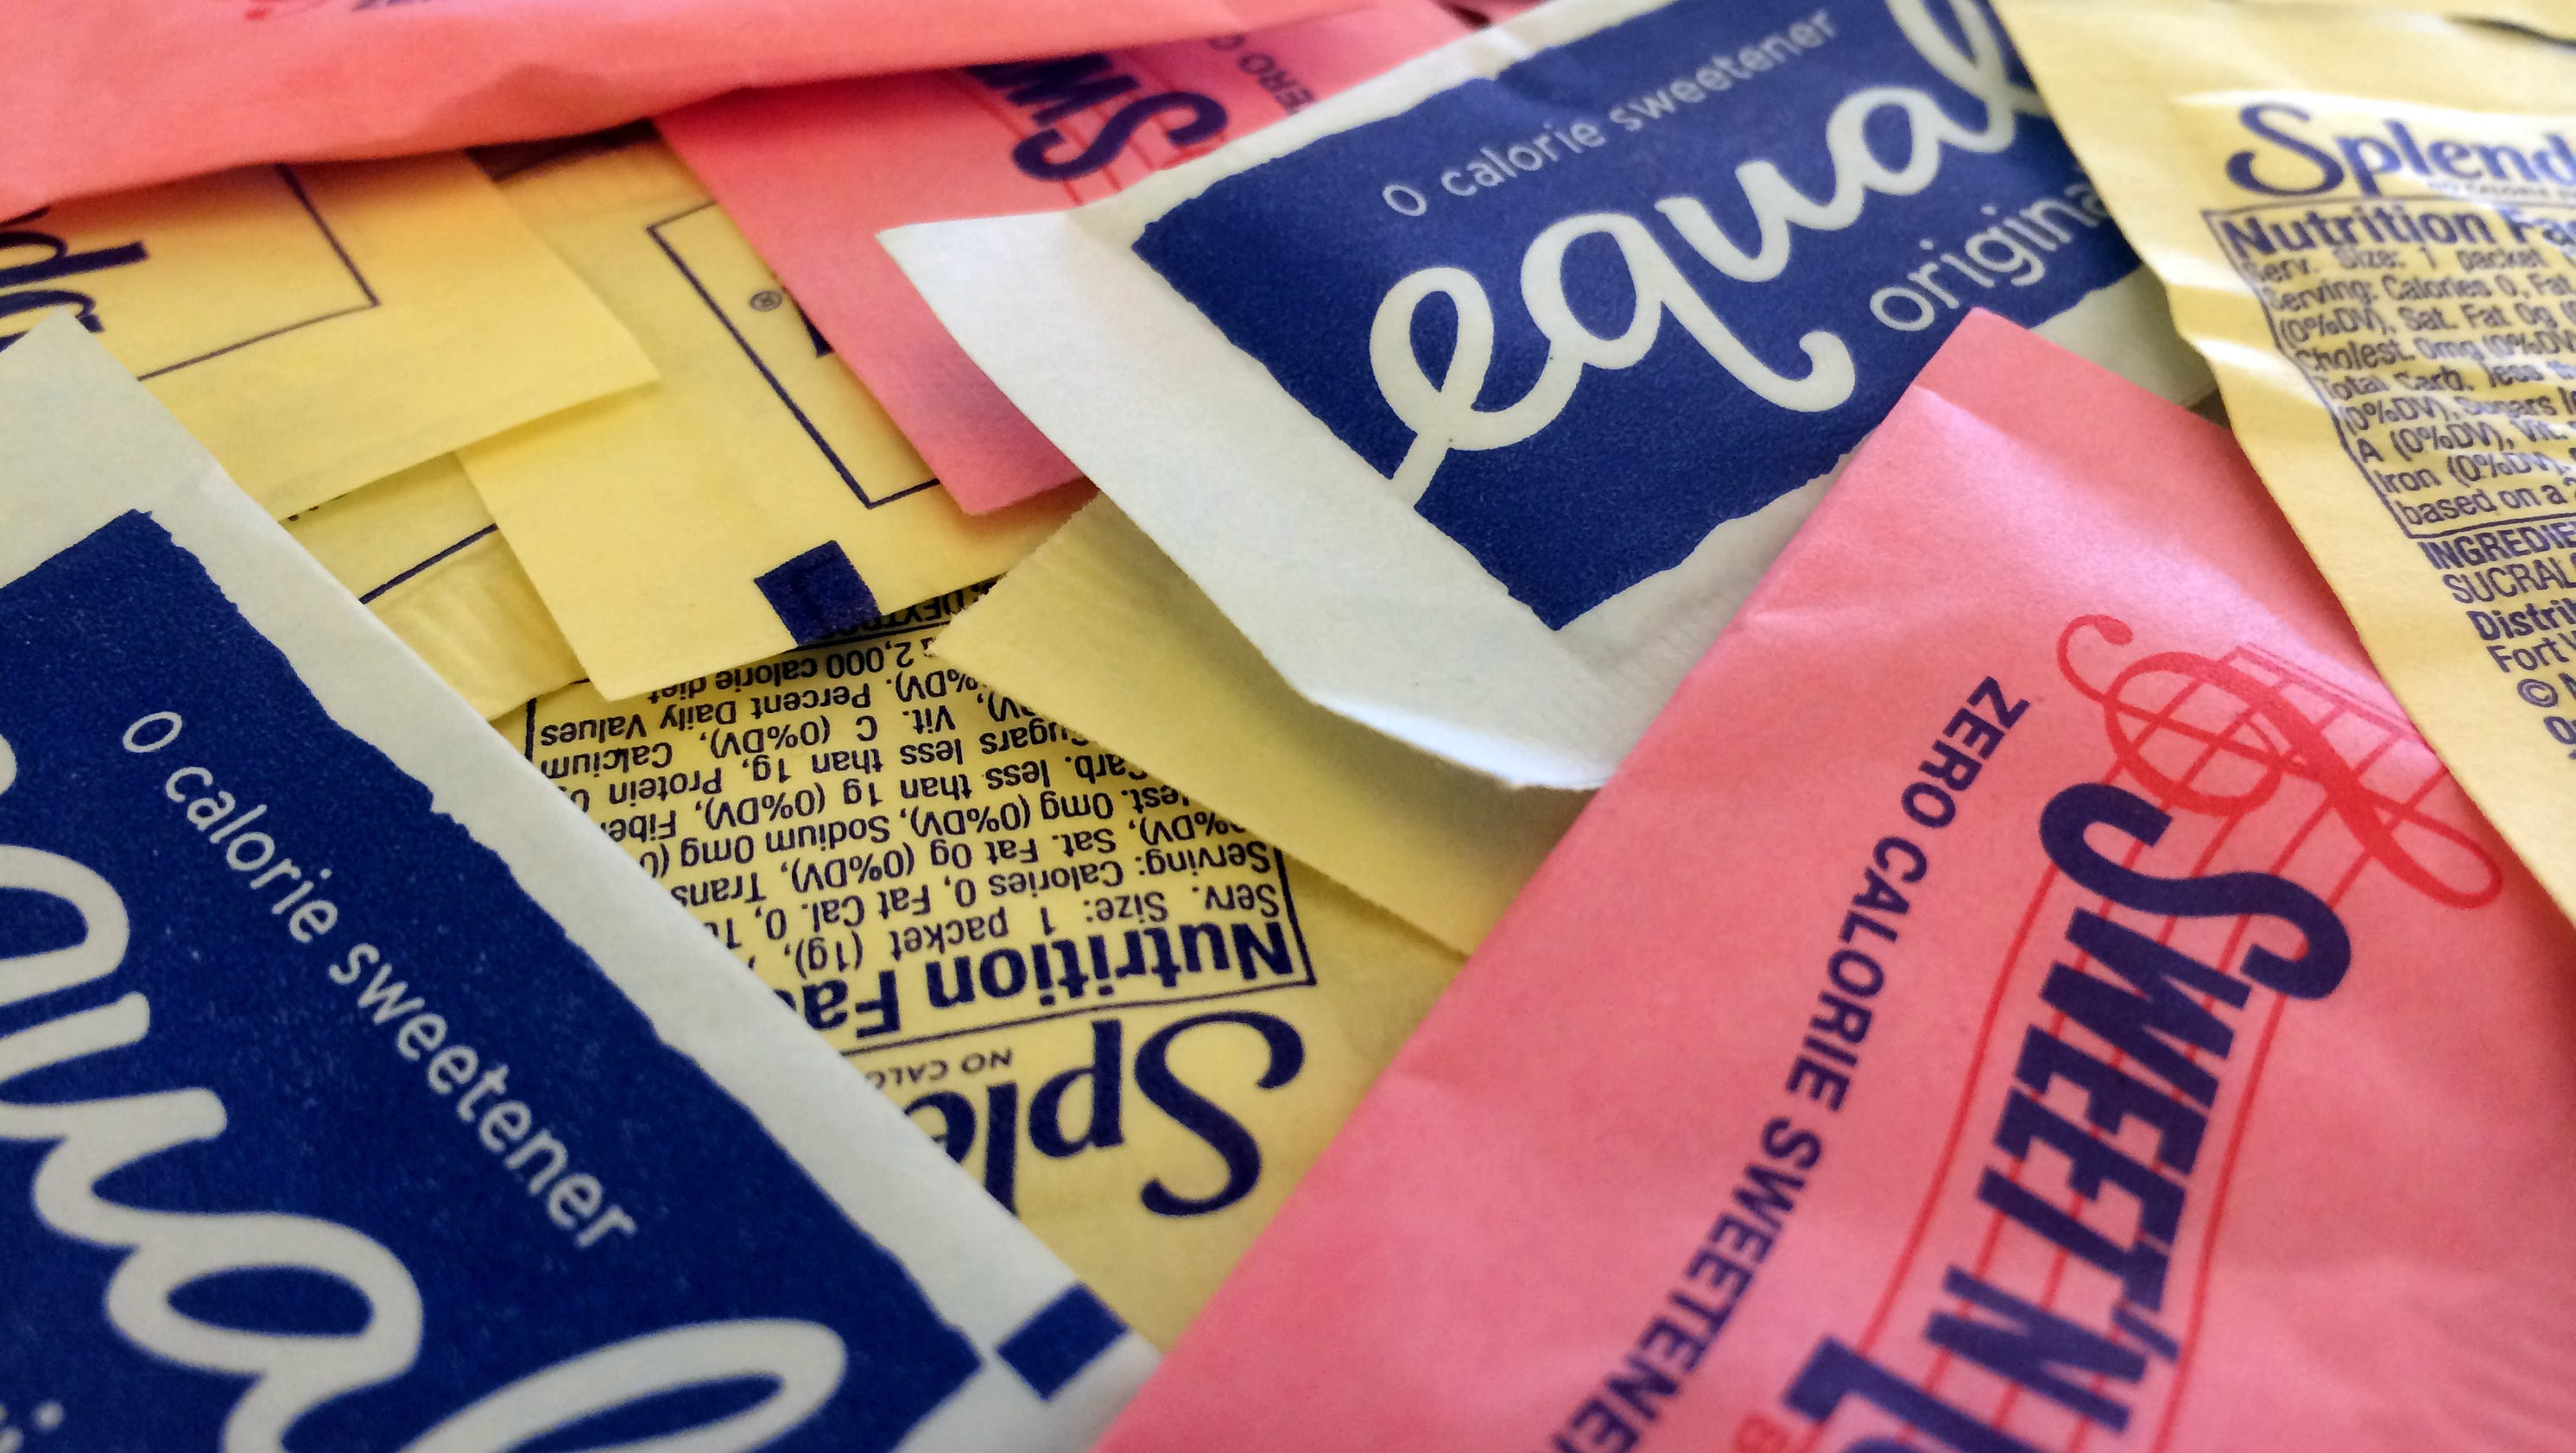 Artificial sweeteners may lead to diabetes